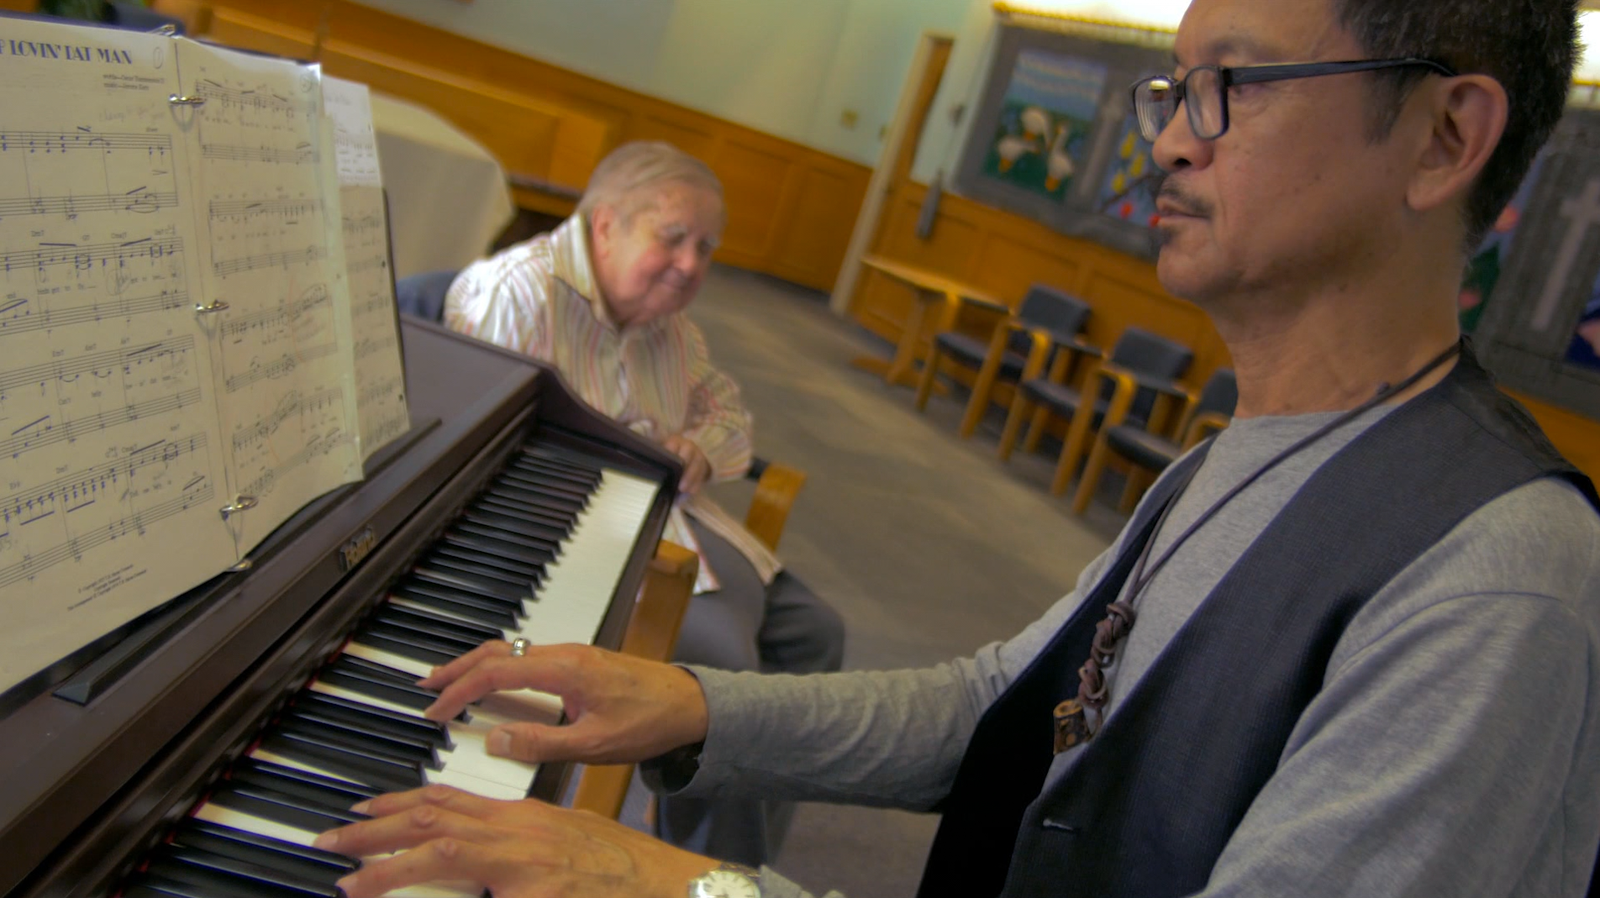 Film still: a photograph of a man playing the piano while an elderly man listens in the background.